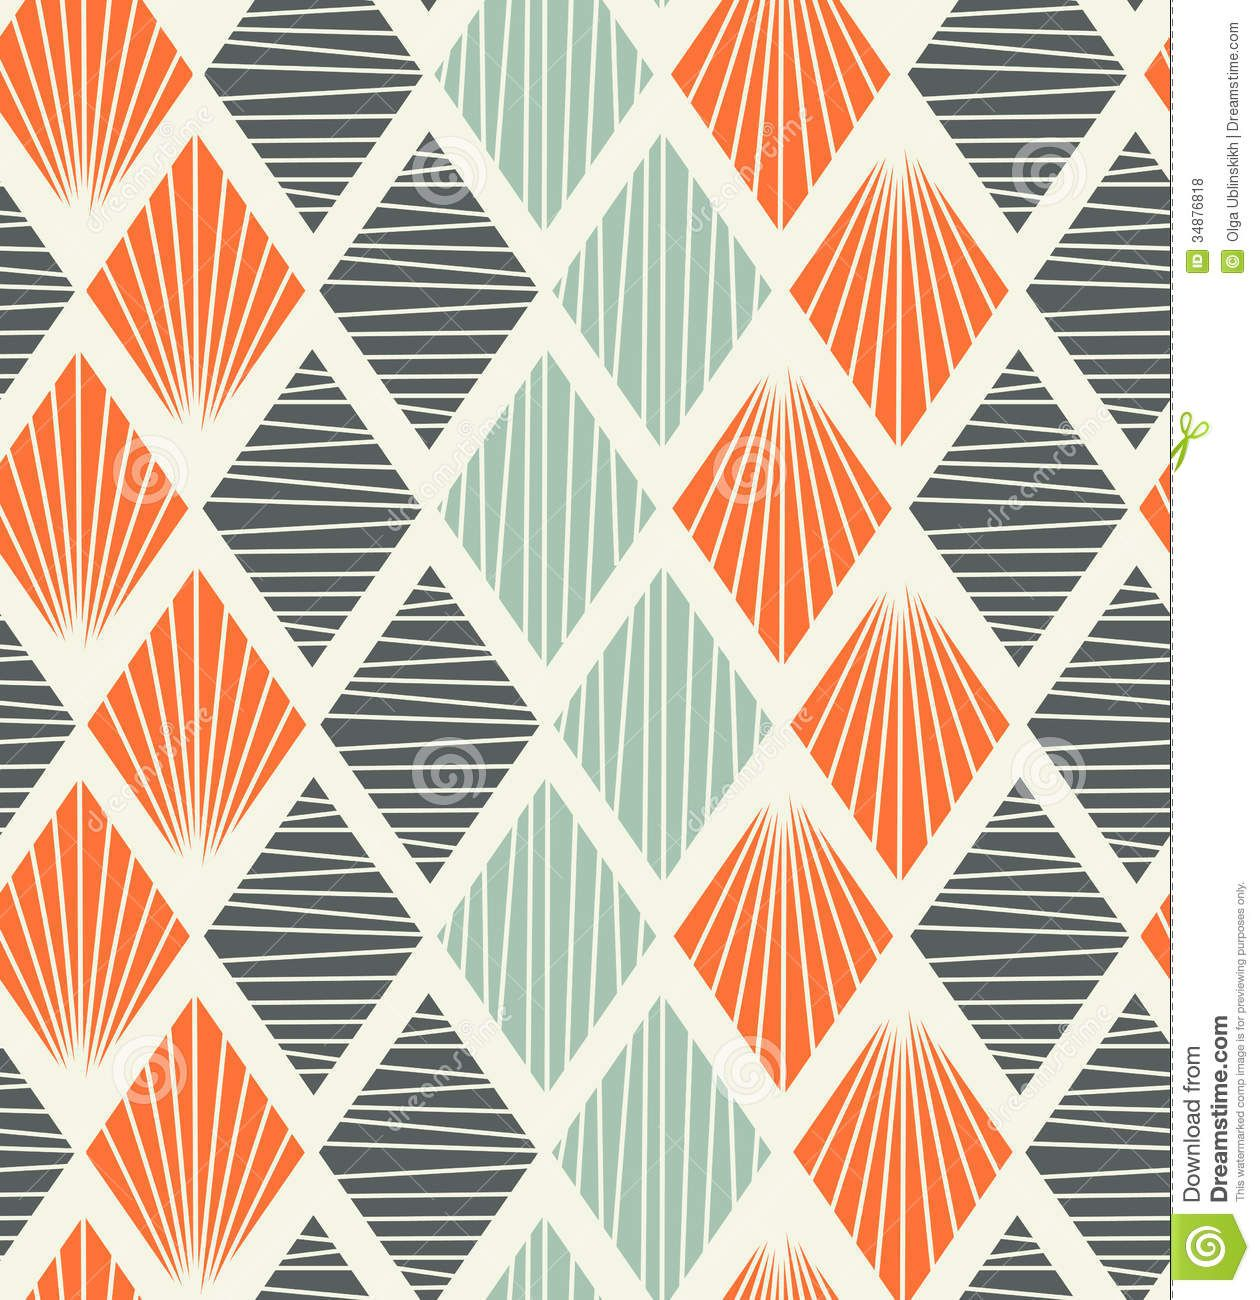 Seamless Geometric Pattern With Rhombs Decorative Background - Download  From Over 45 Million High Quality Stock